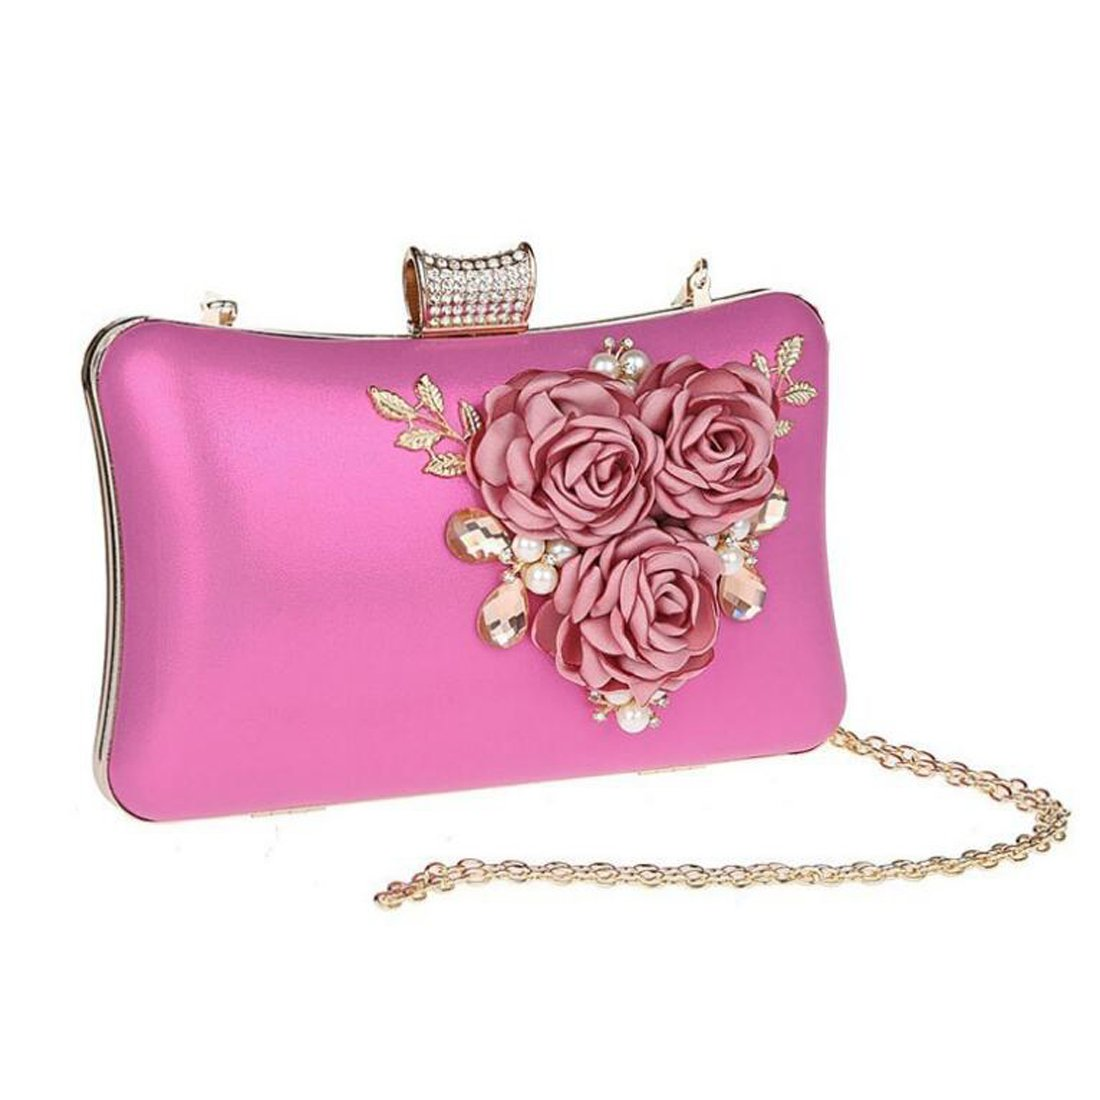 EPLAZA Women Large Capacity Flora Evening Clutch Bags Wedding Party Purse Handbags Wallet (rose red) by EPLAZA (Image #2)